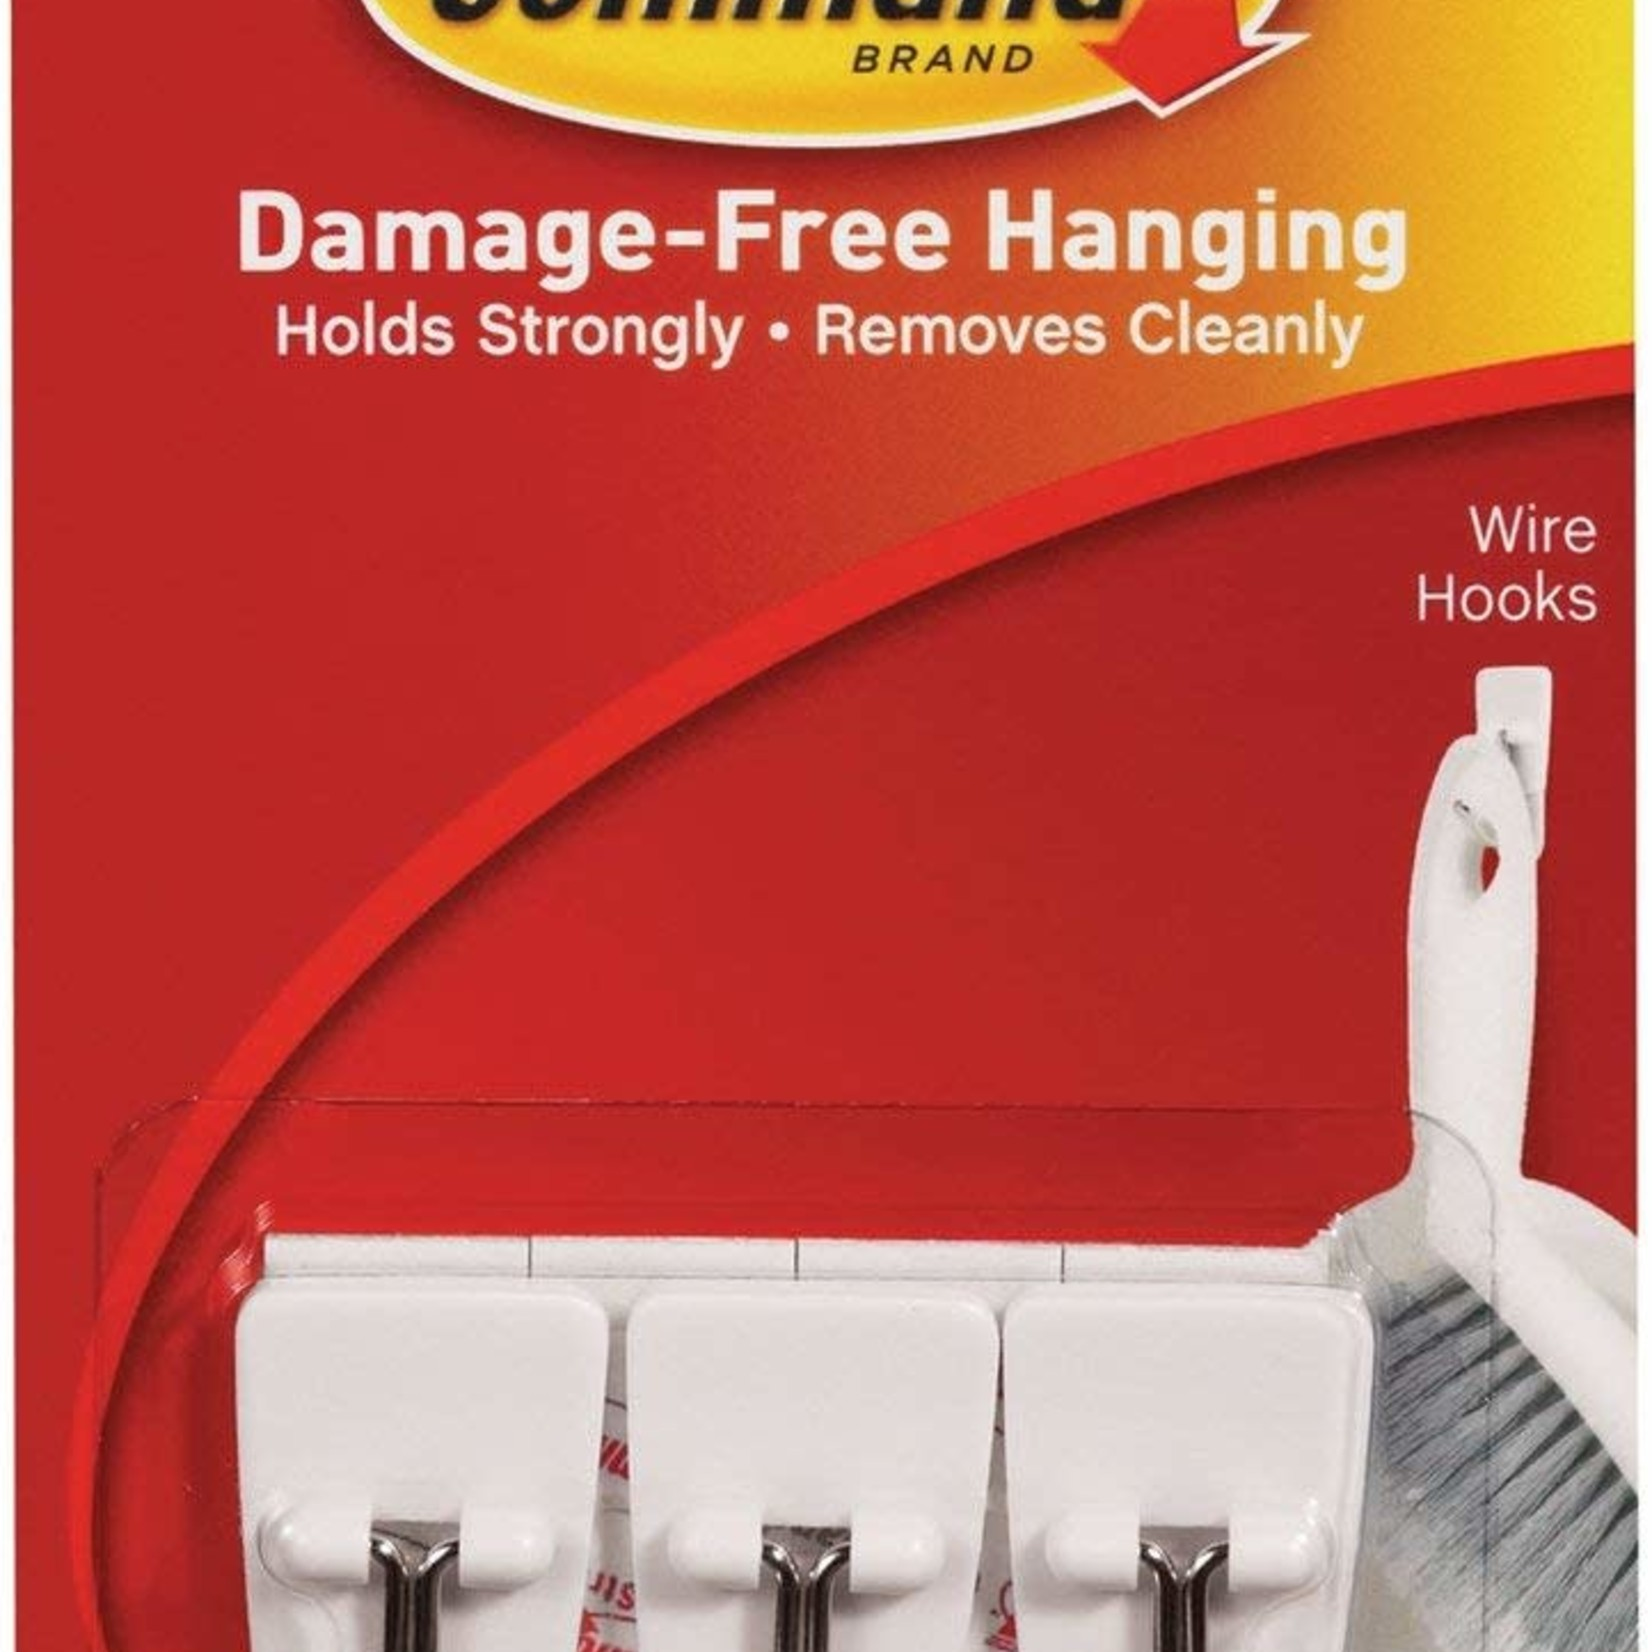 3M Command COMMAND SMALL WIRE HOOKS PICTURE HANGING 3 PACK 225G